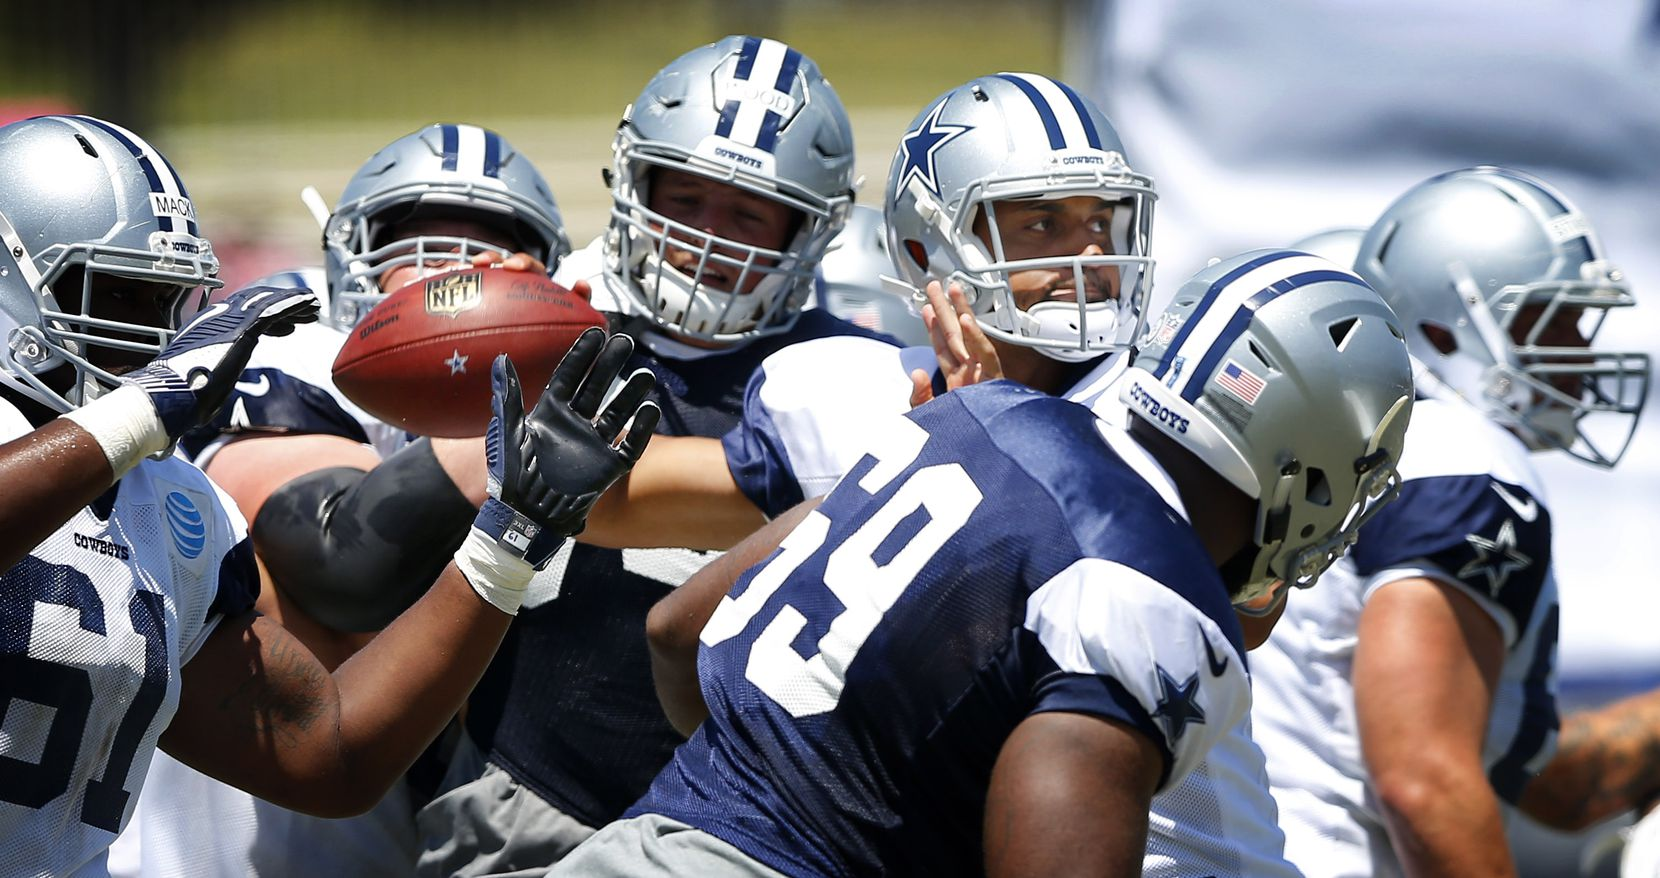 Dallas Cowboys quarterback Dak Prescott (4) cocks the ball back for a pass as he is surrounded by teammates during morning practice at training camp in Oxnard, California, Thursday, August 11, 2016. (Tom Fox/The Dallas Morning News)